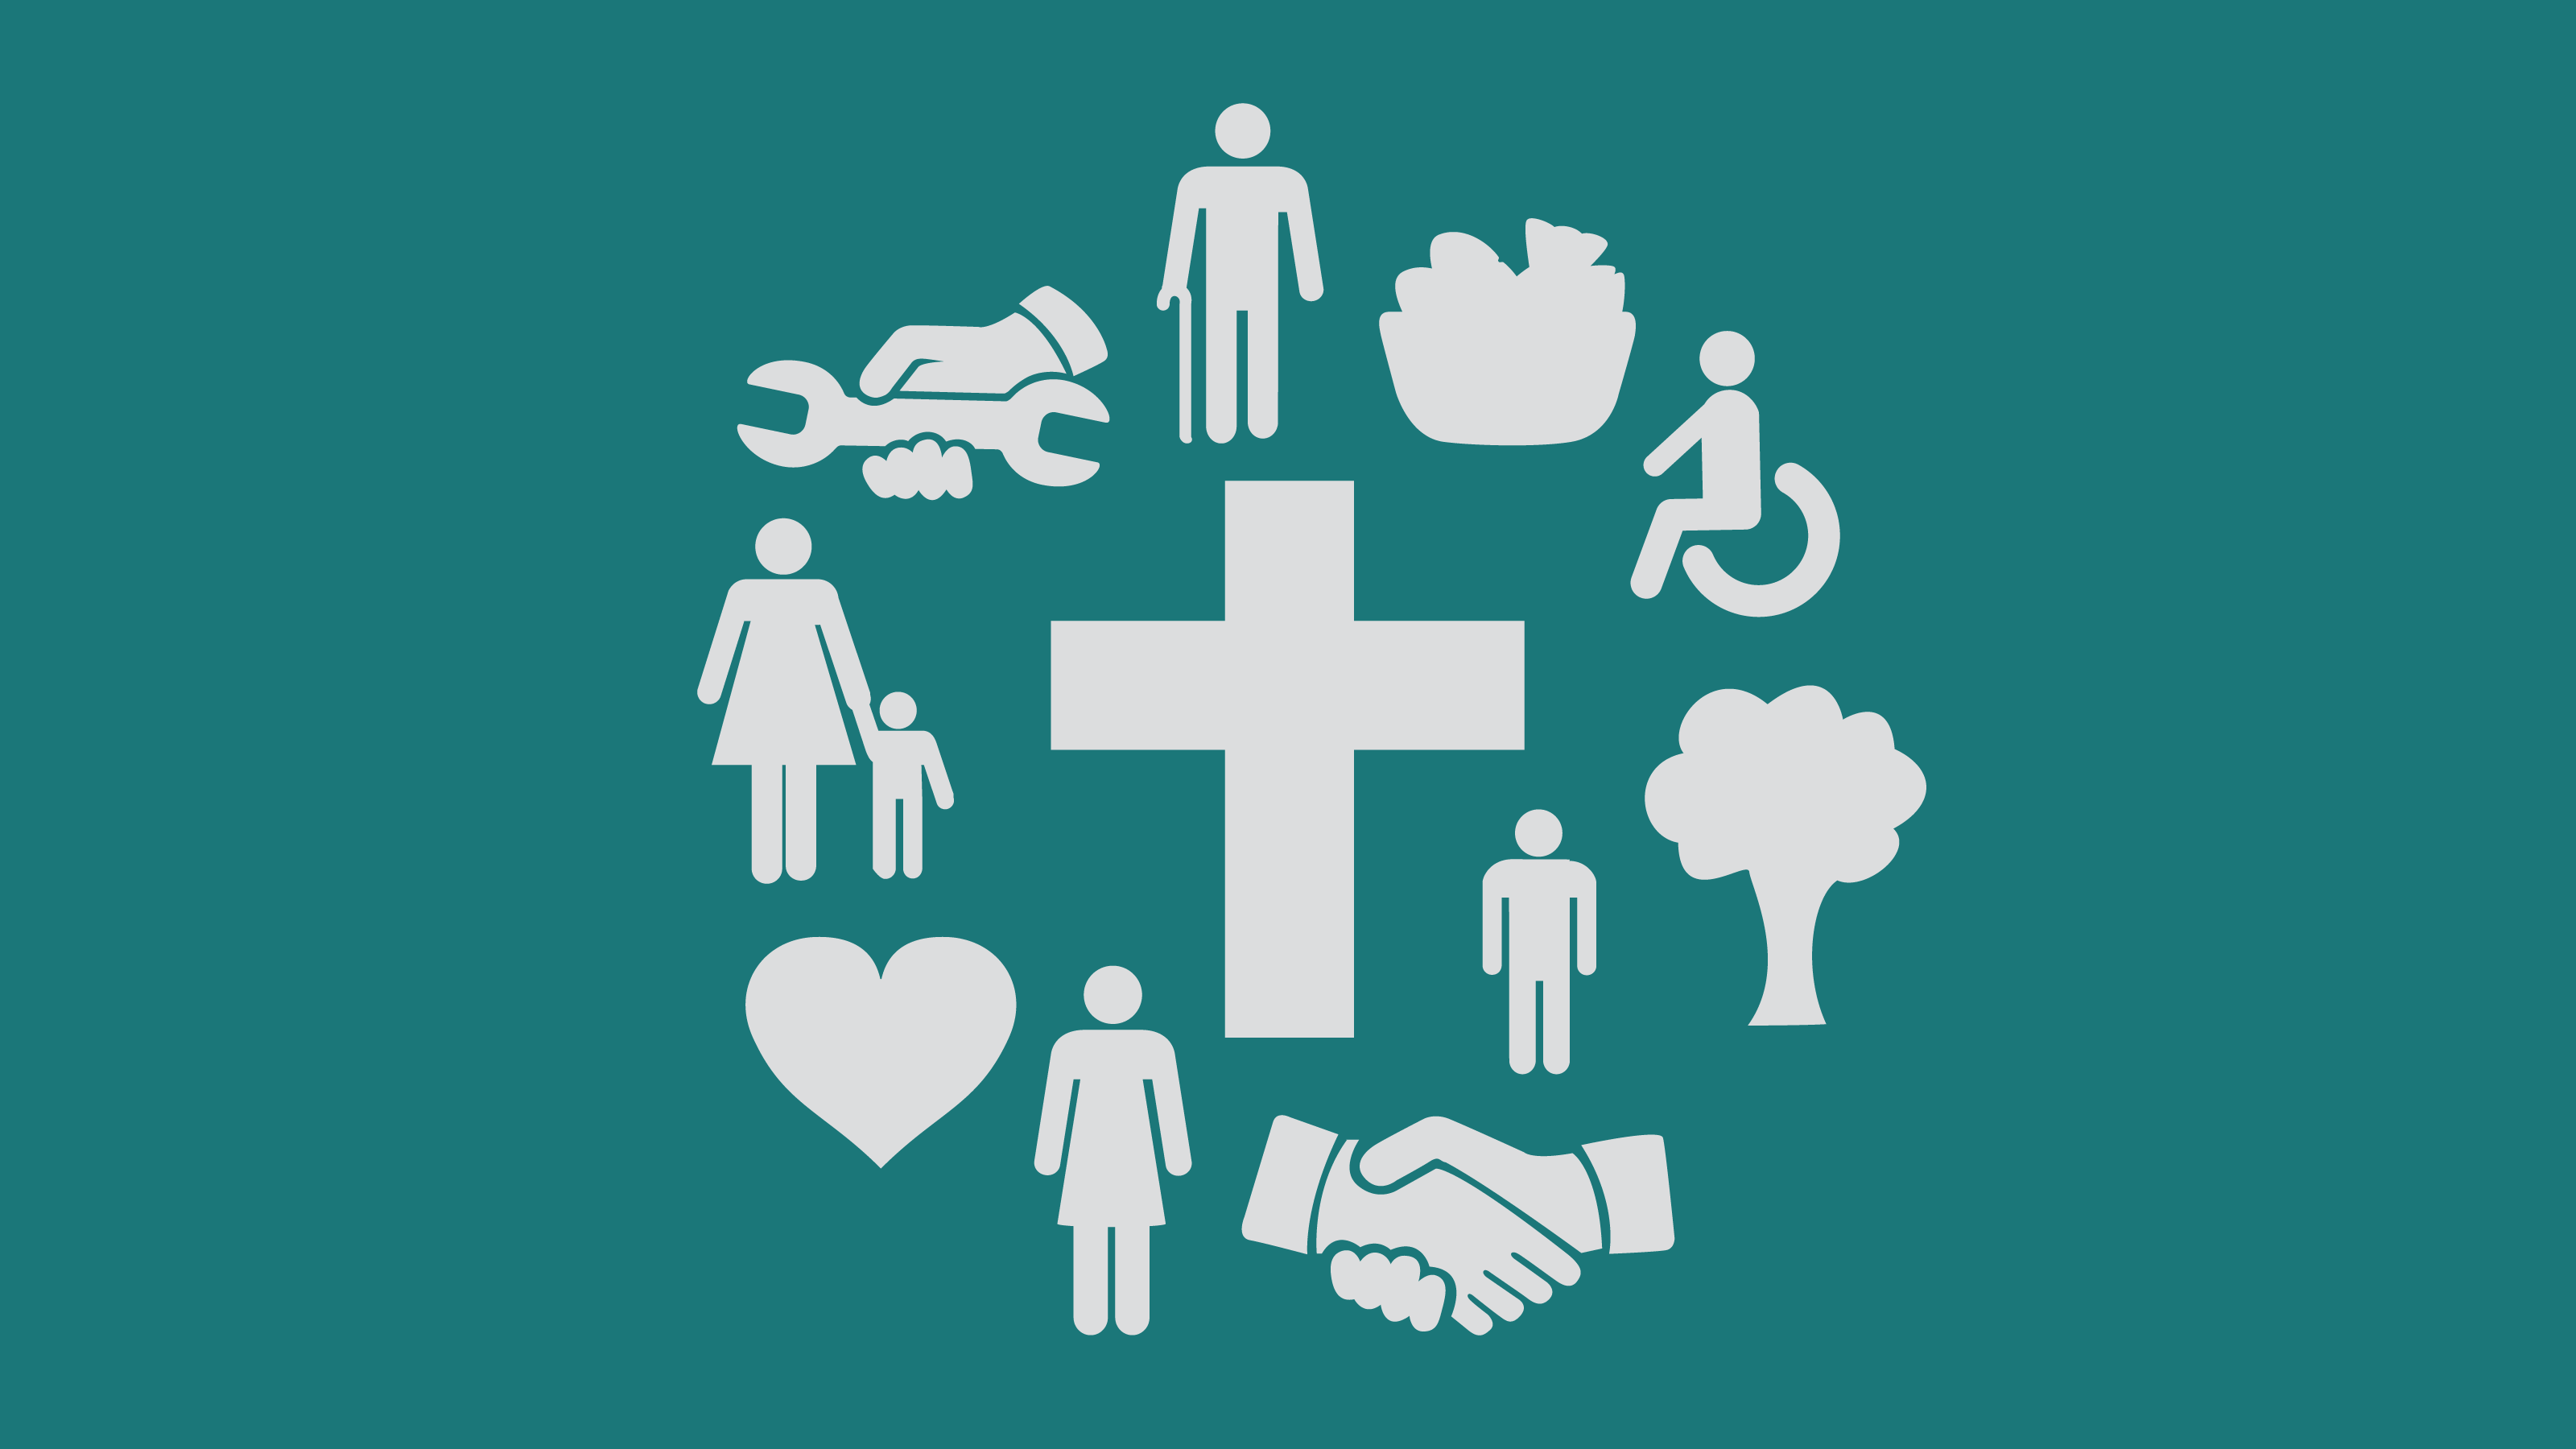 Illustration showing the many ways mission integrates into daily life